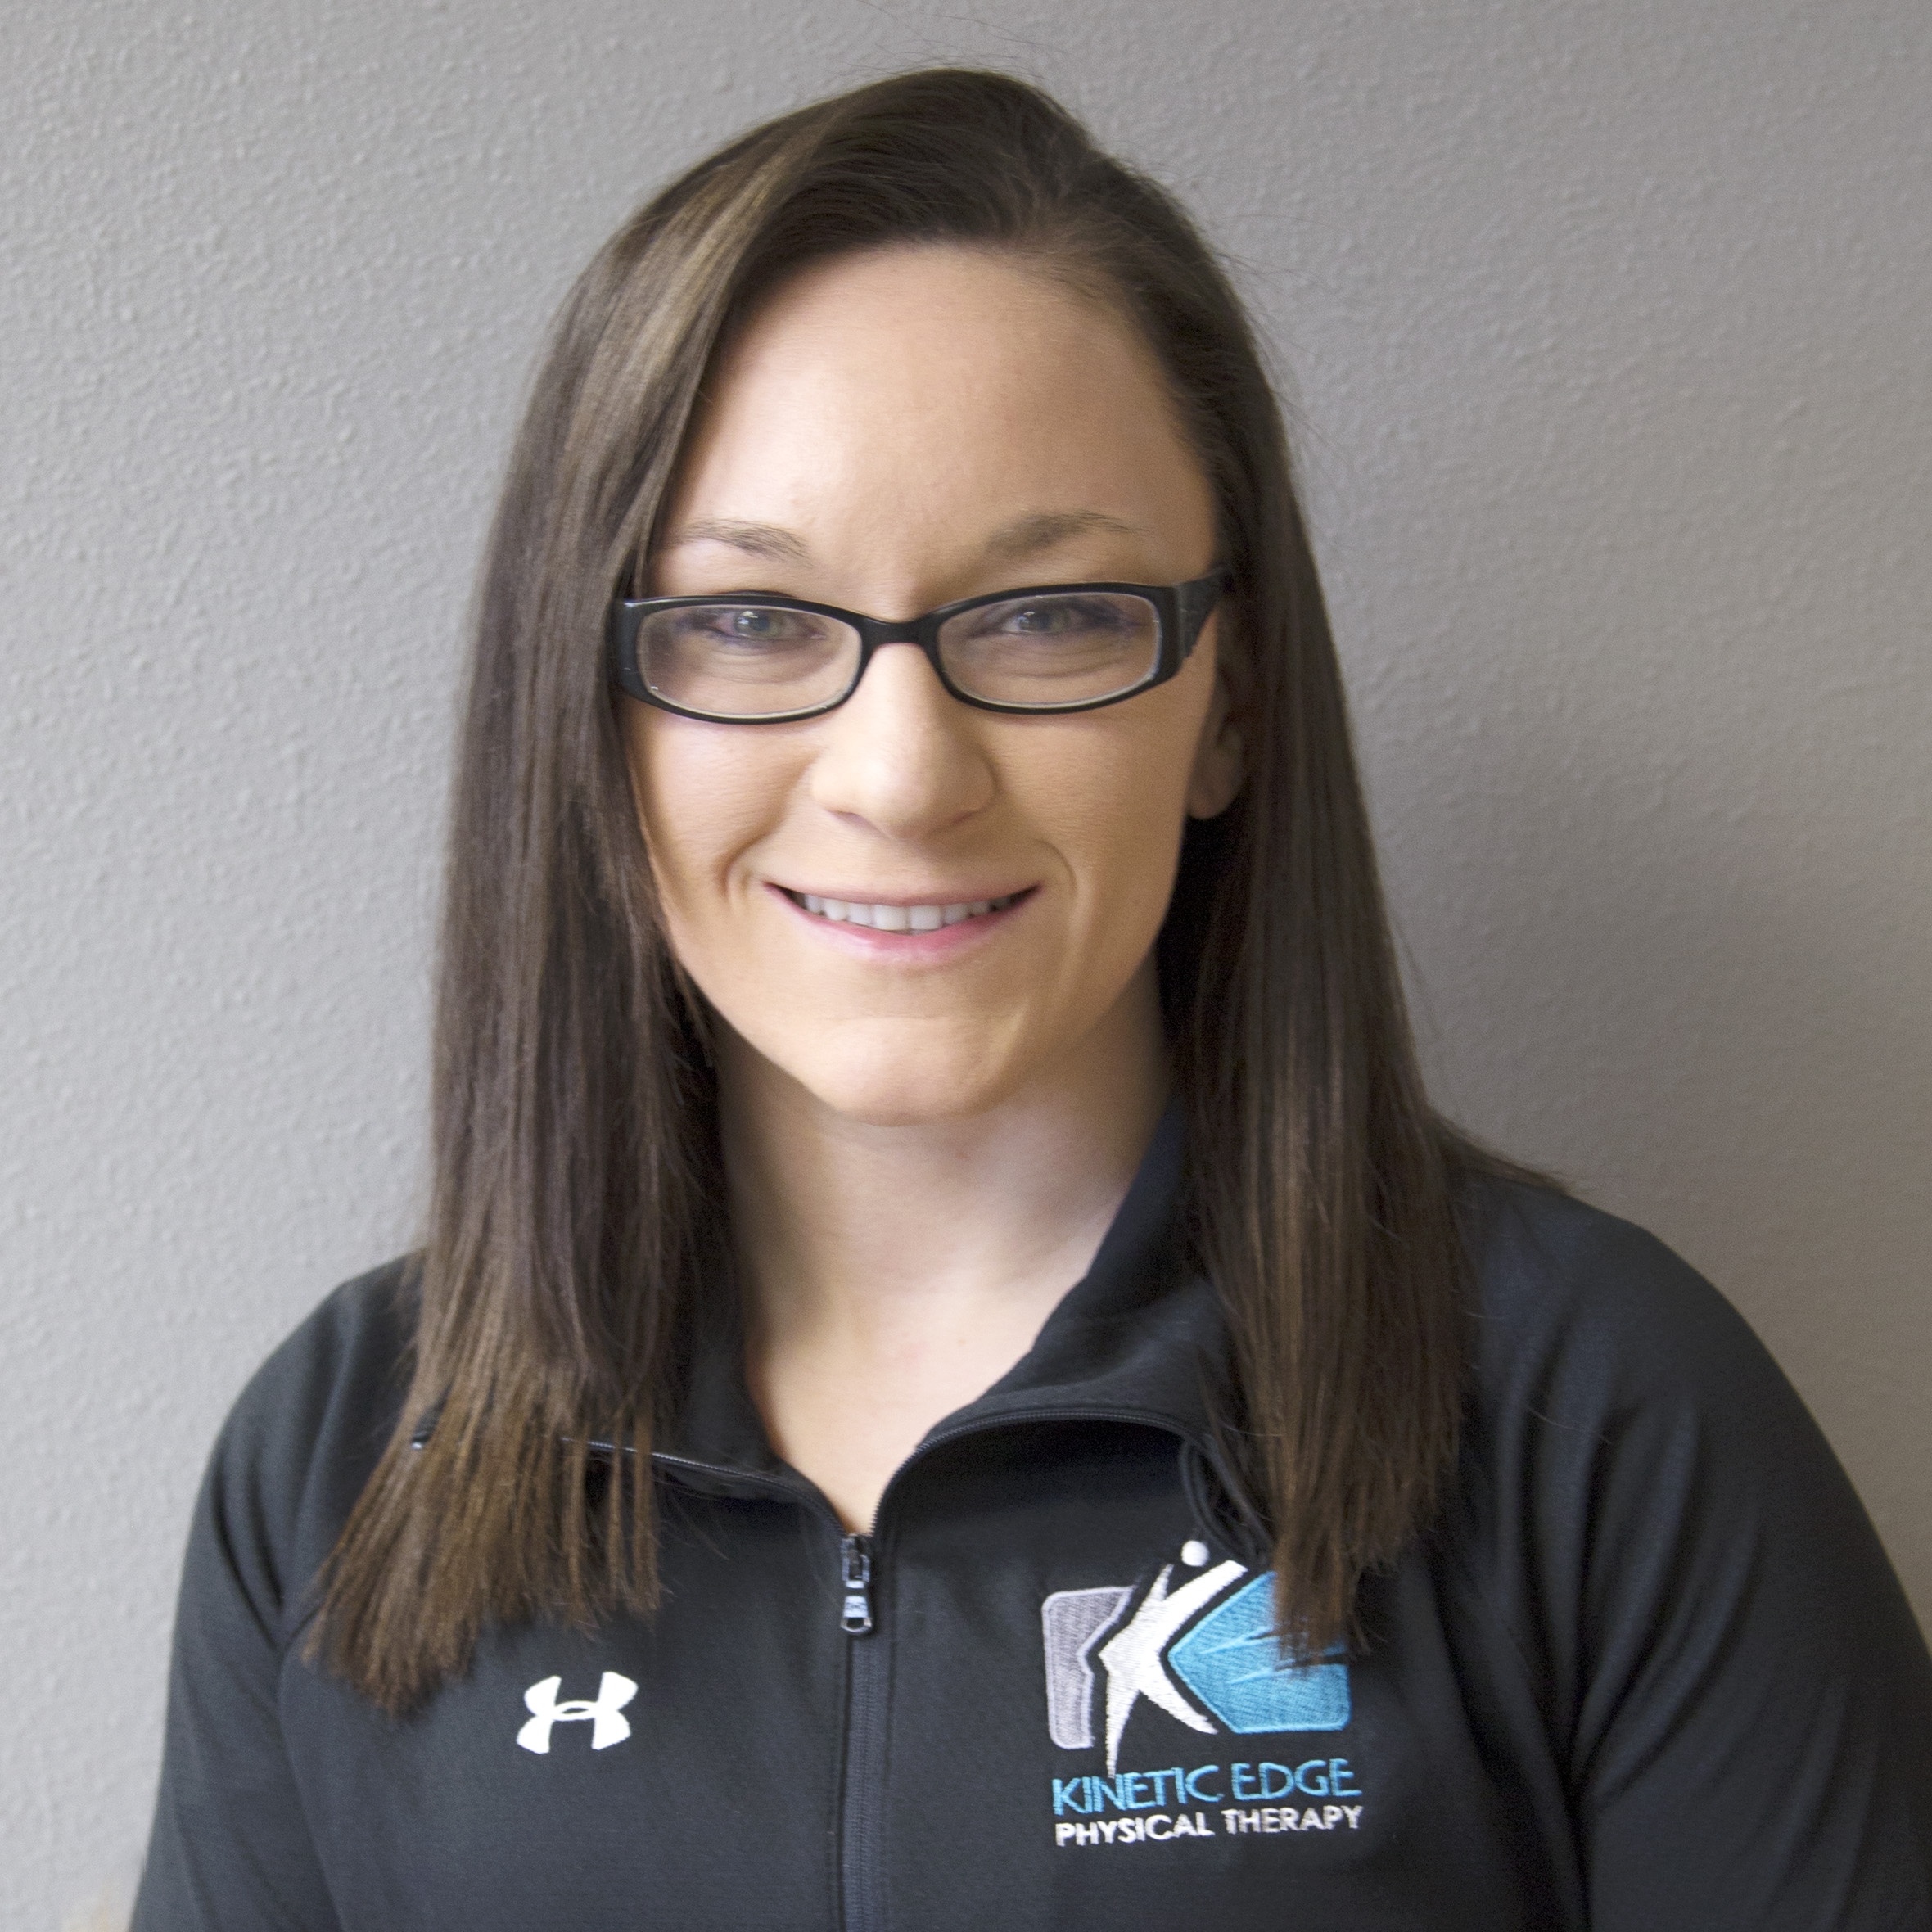 Des_Moines_Physical_Therapist